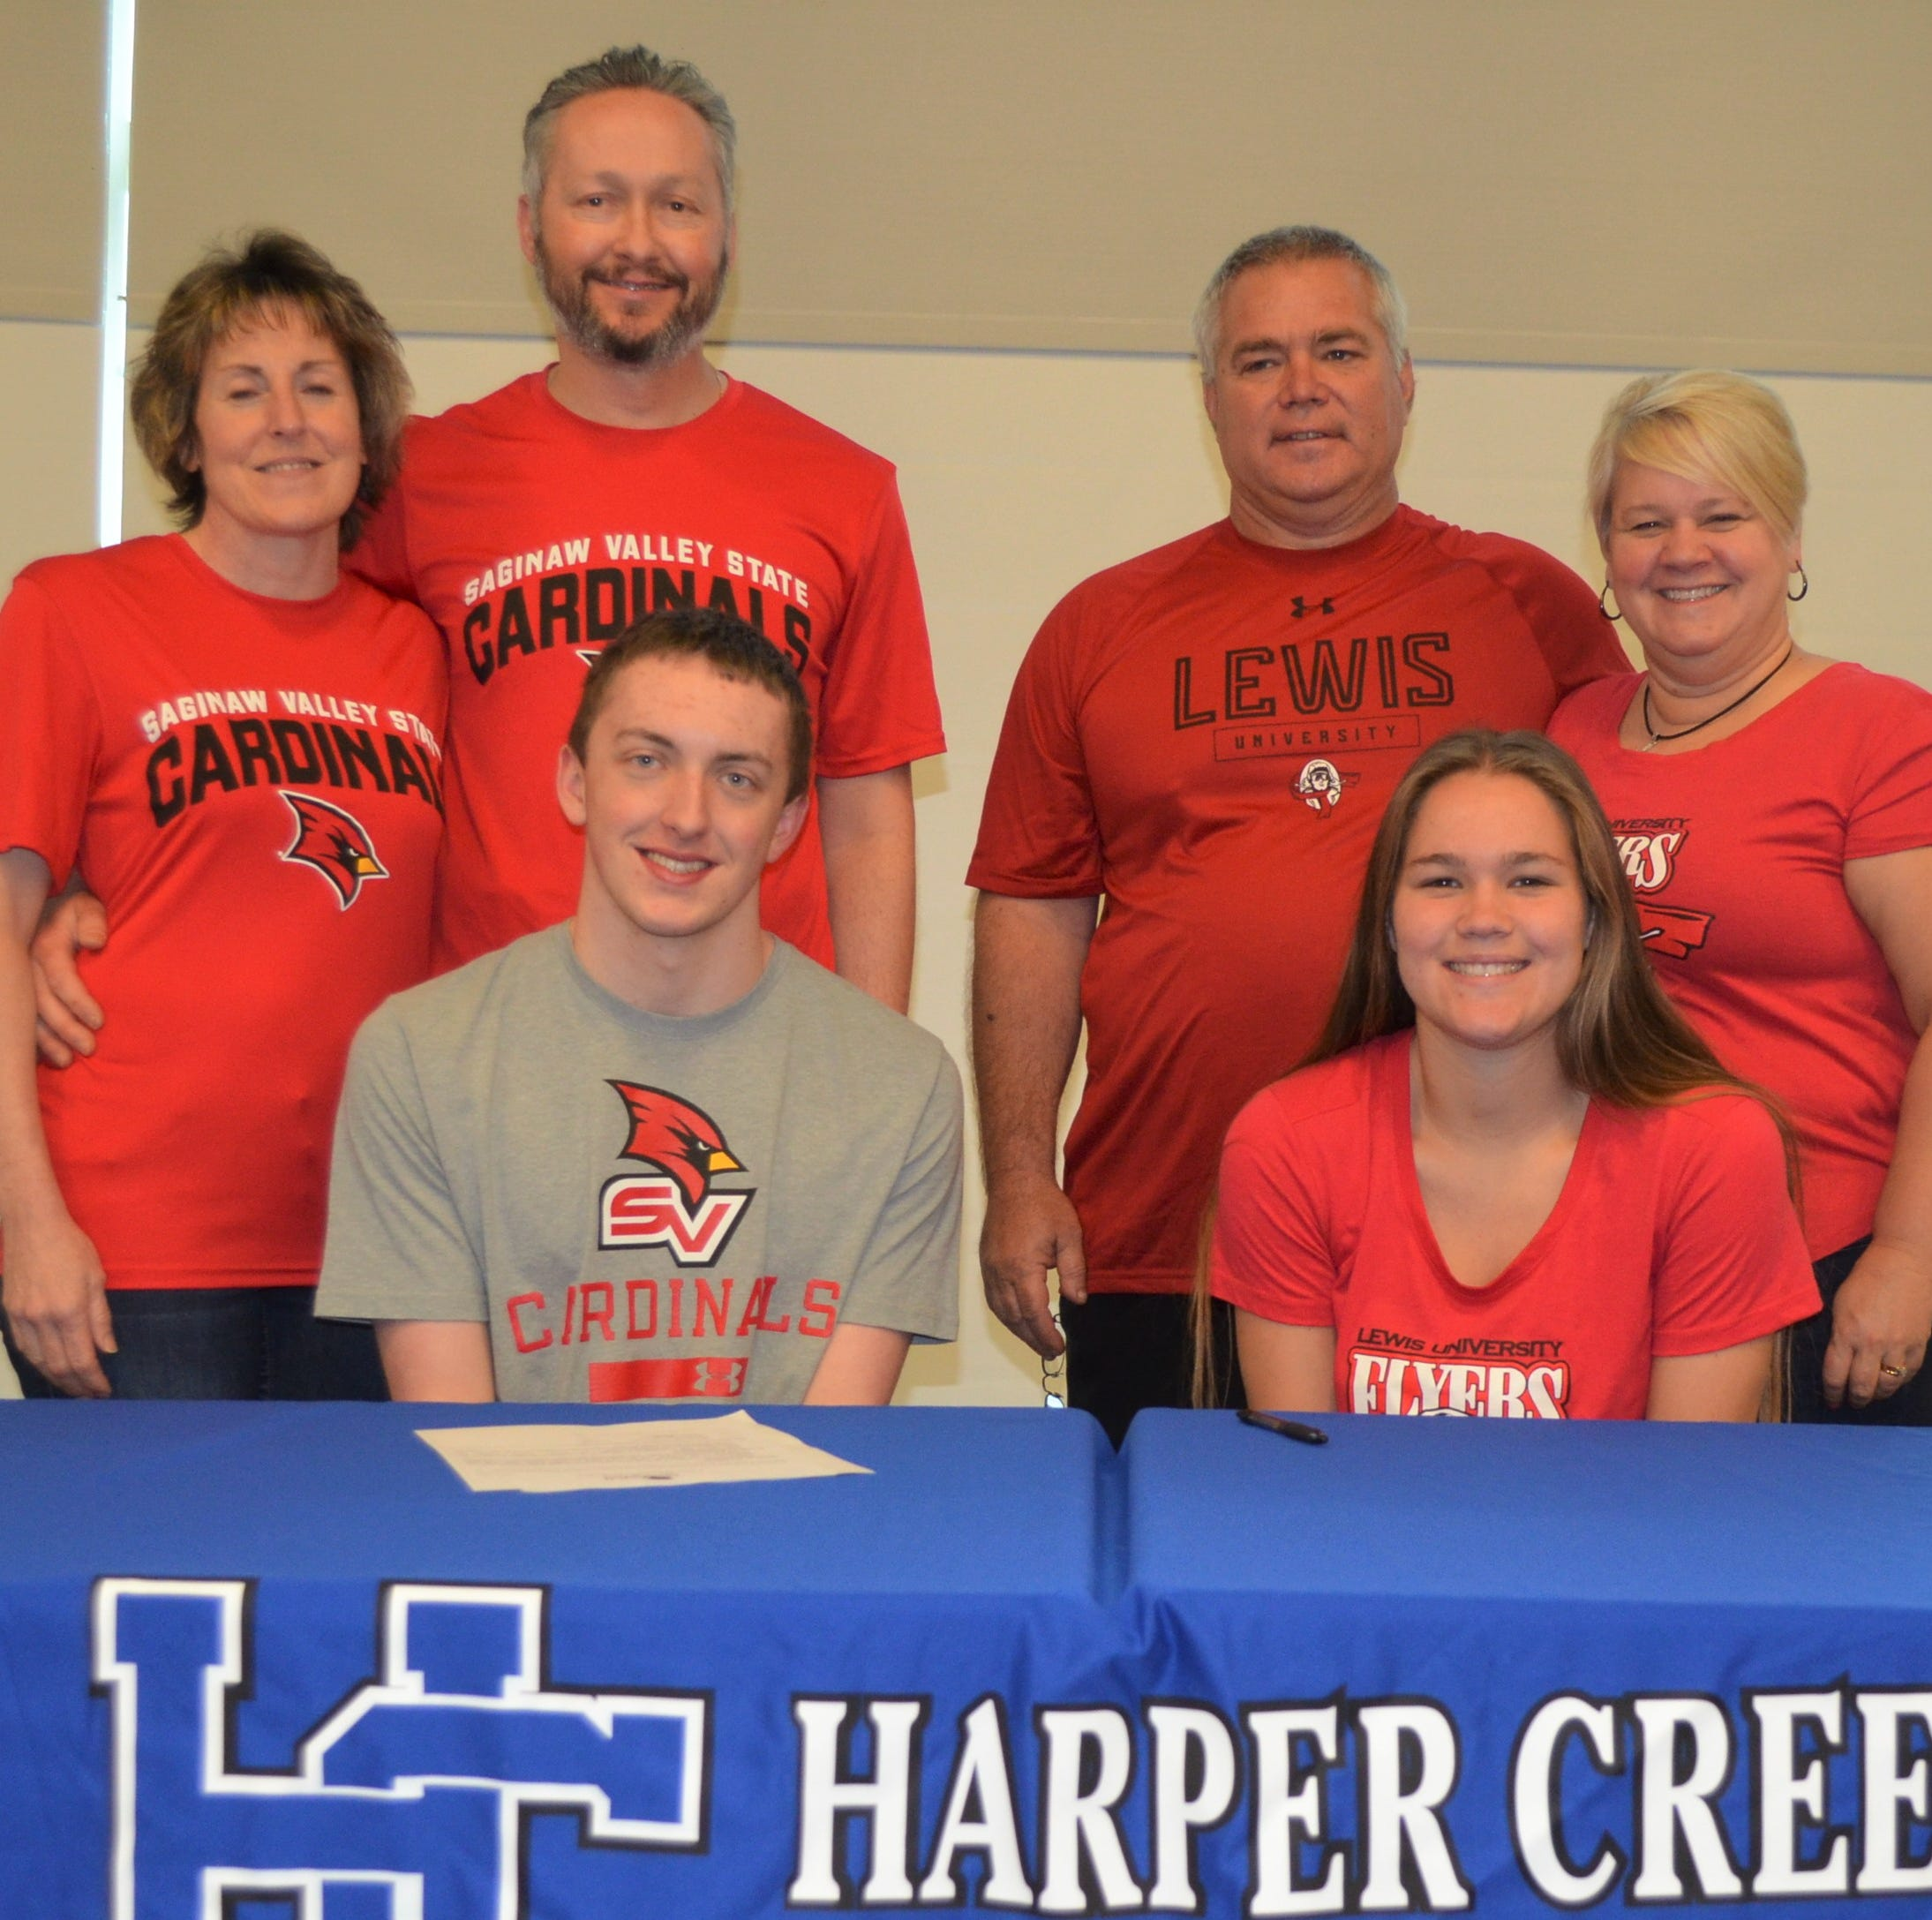 Harper Creek's Piper, Coon sign National Letters of Intent to compete in college